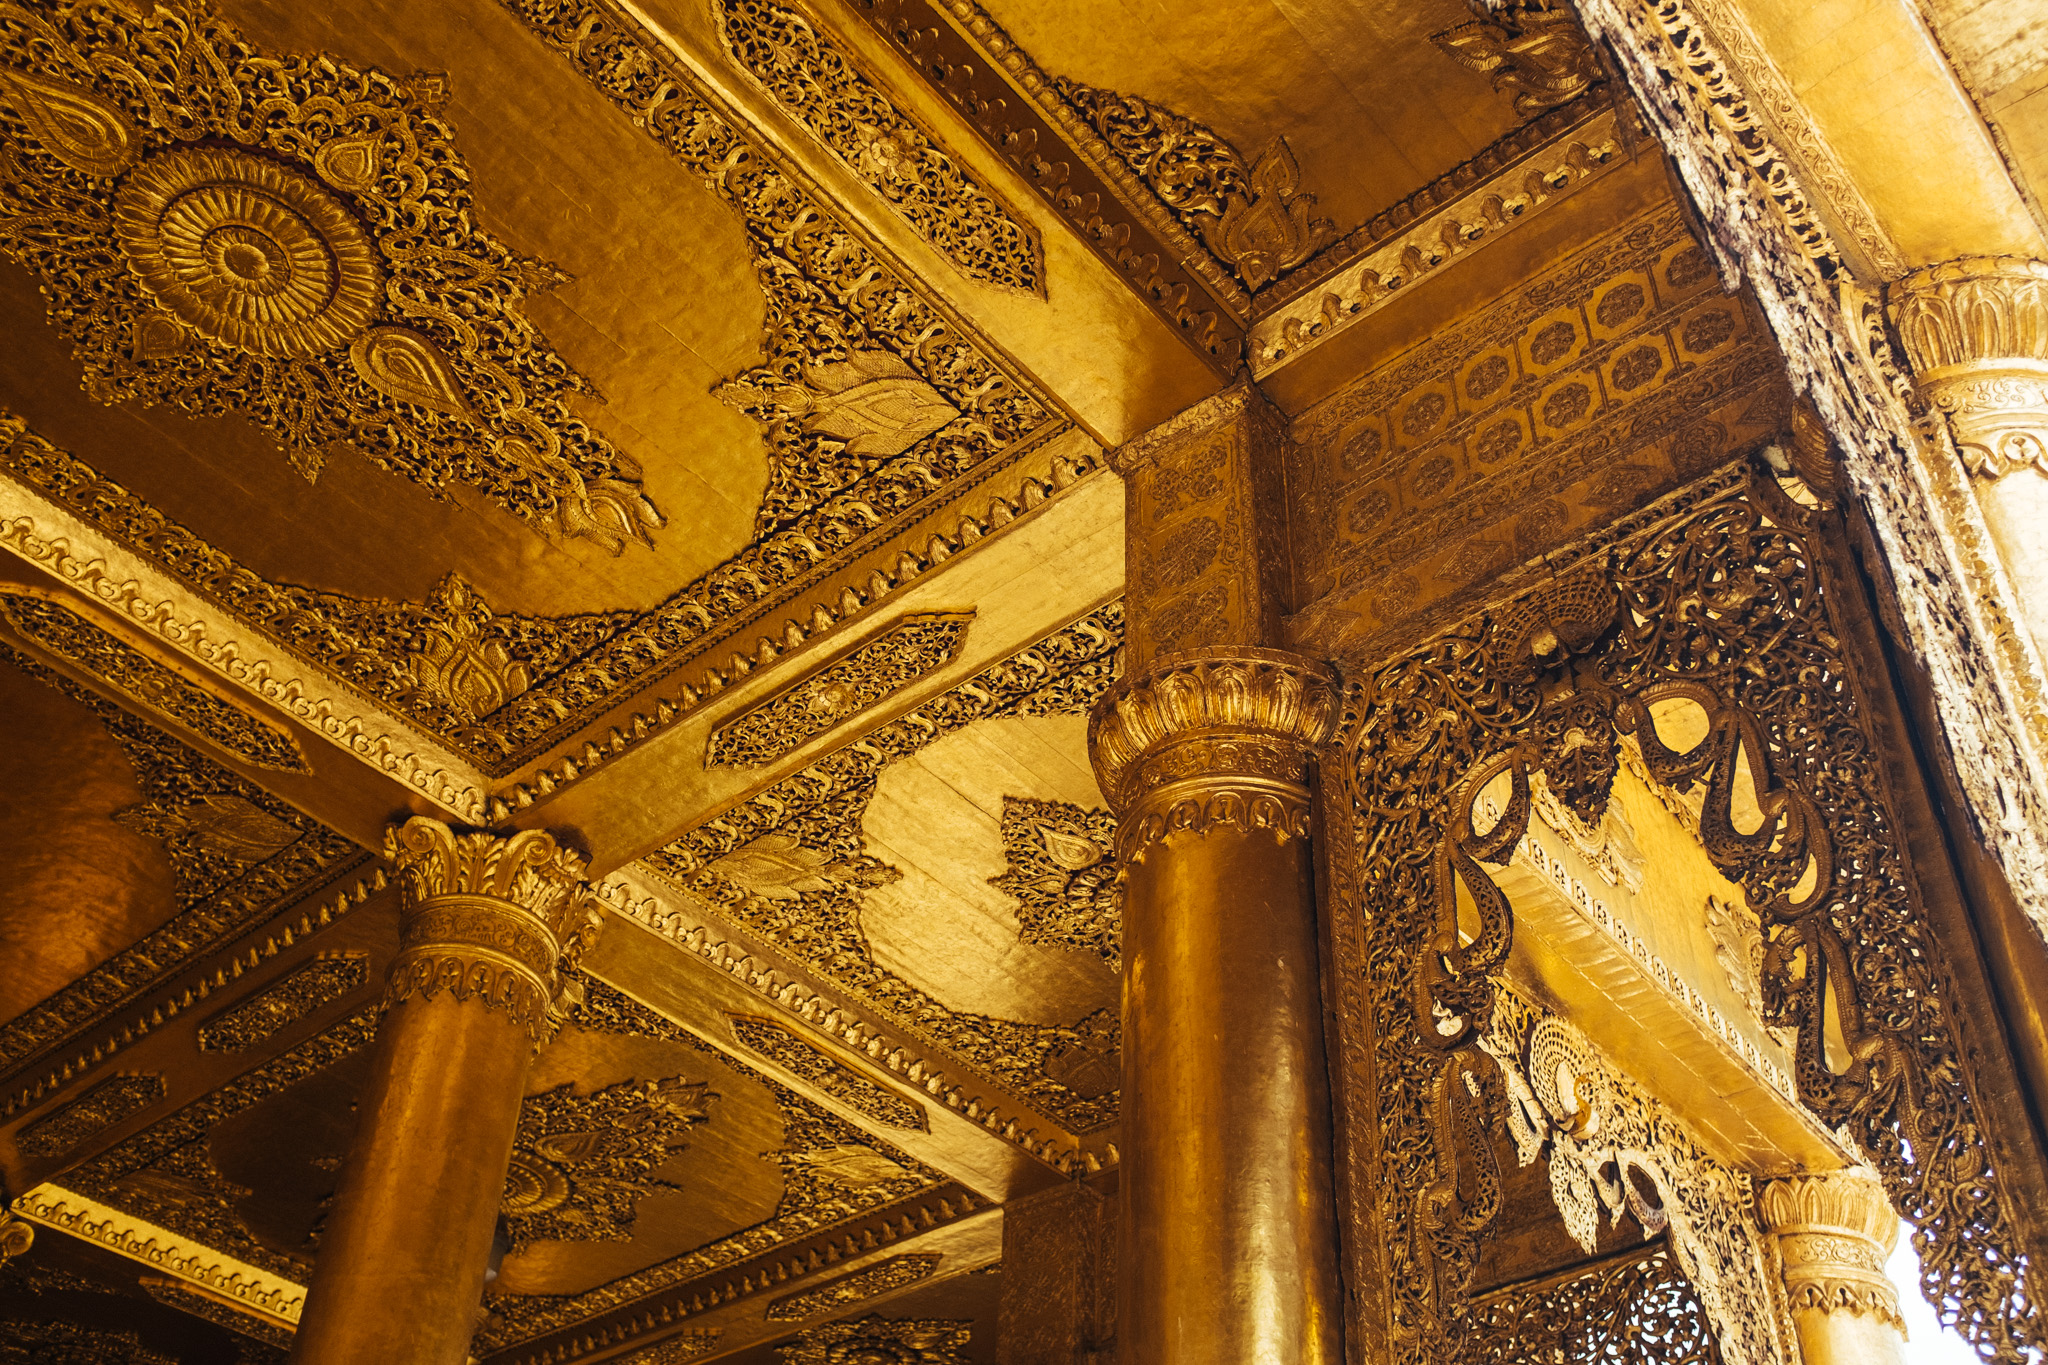 The Shwedagon Pagoda isn't the only monument gilded in gold. Many of it's hallways, chambers and other main structures are also fully covered with golden foil.